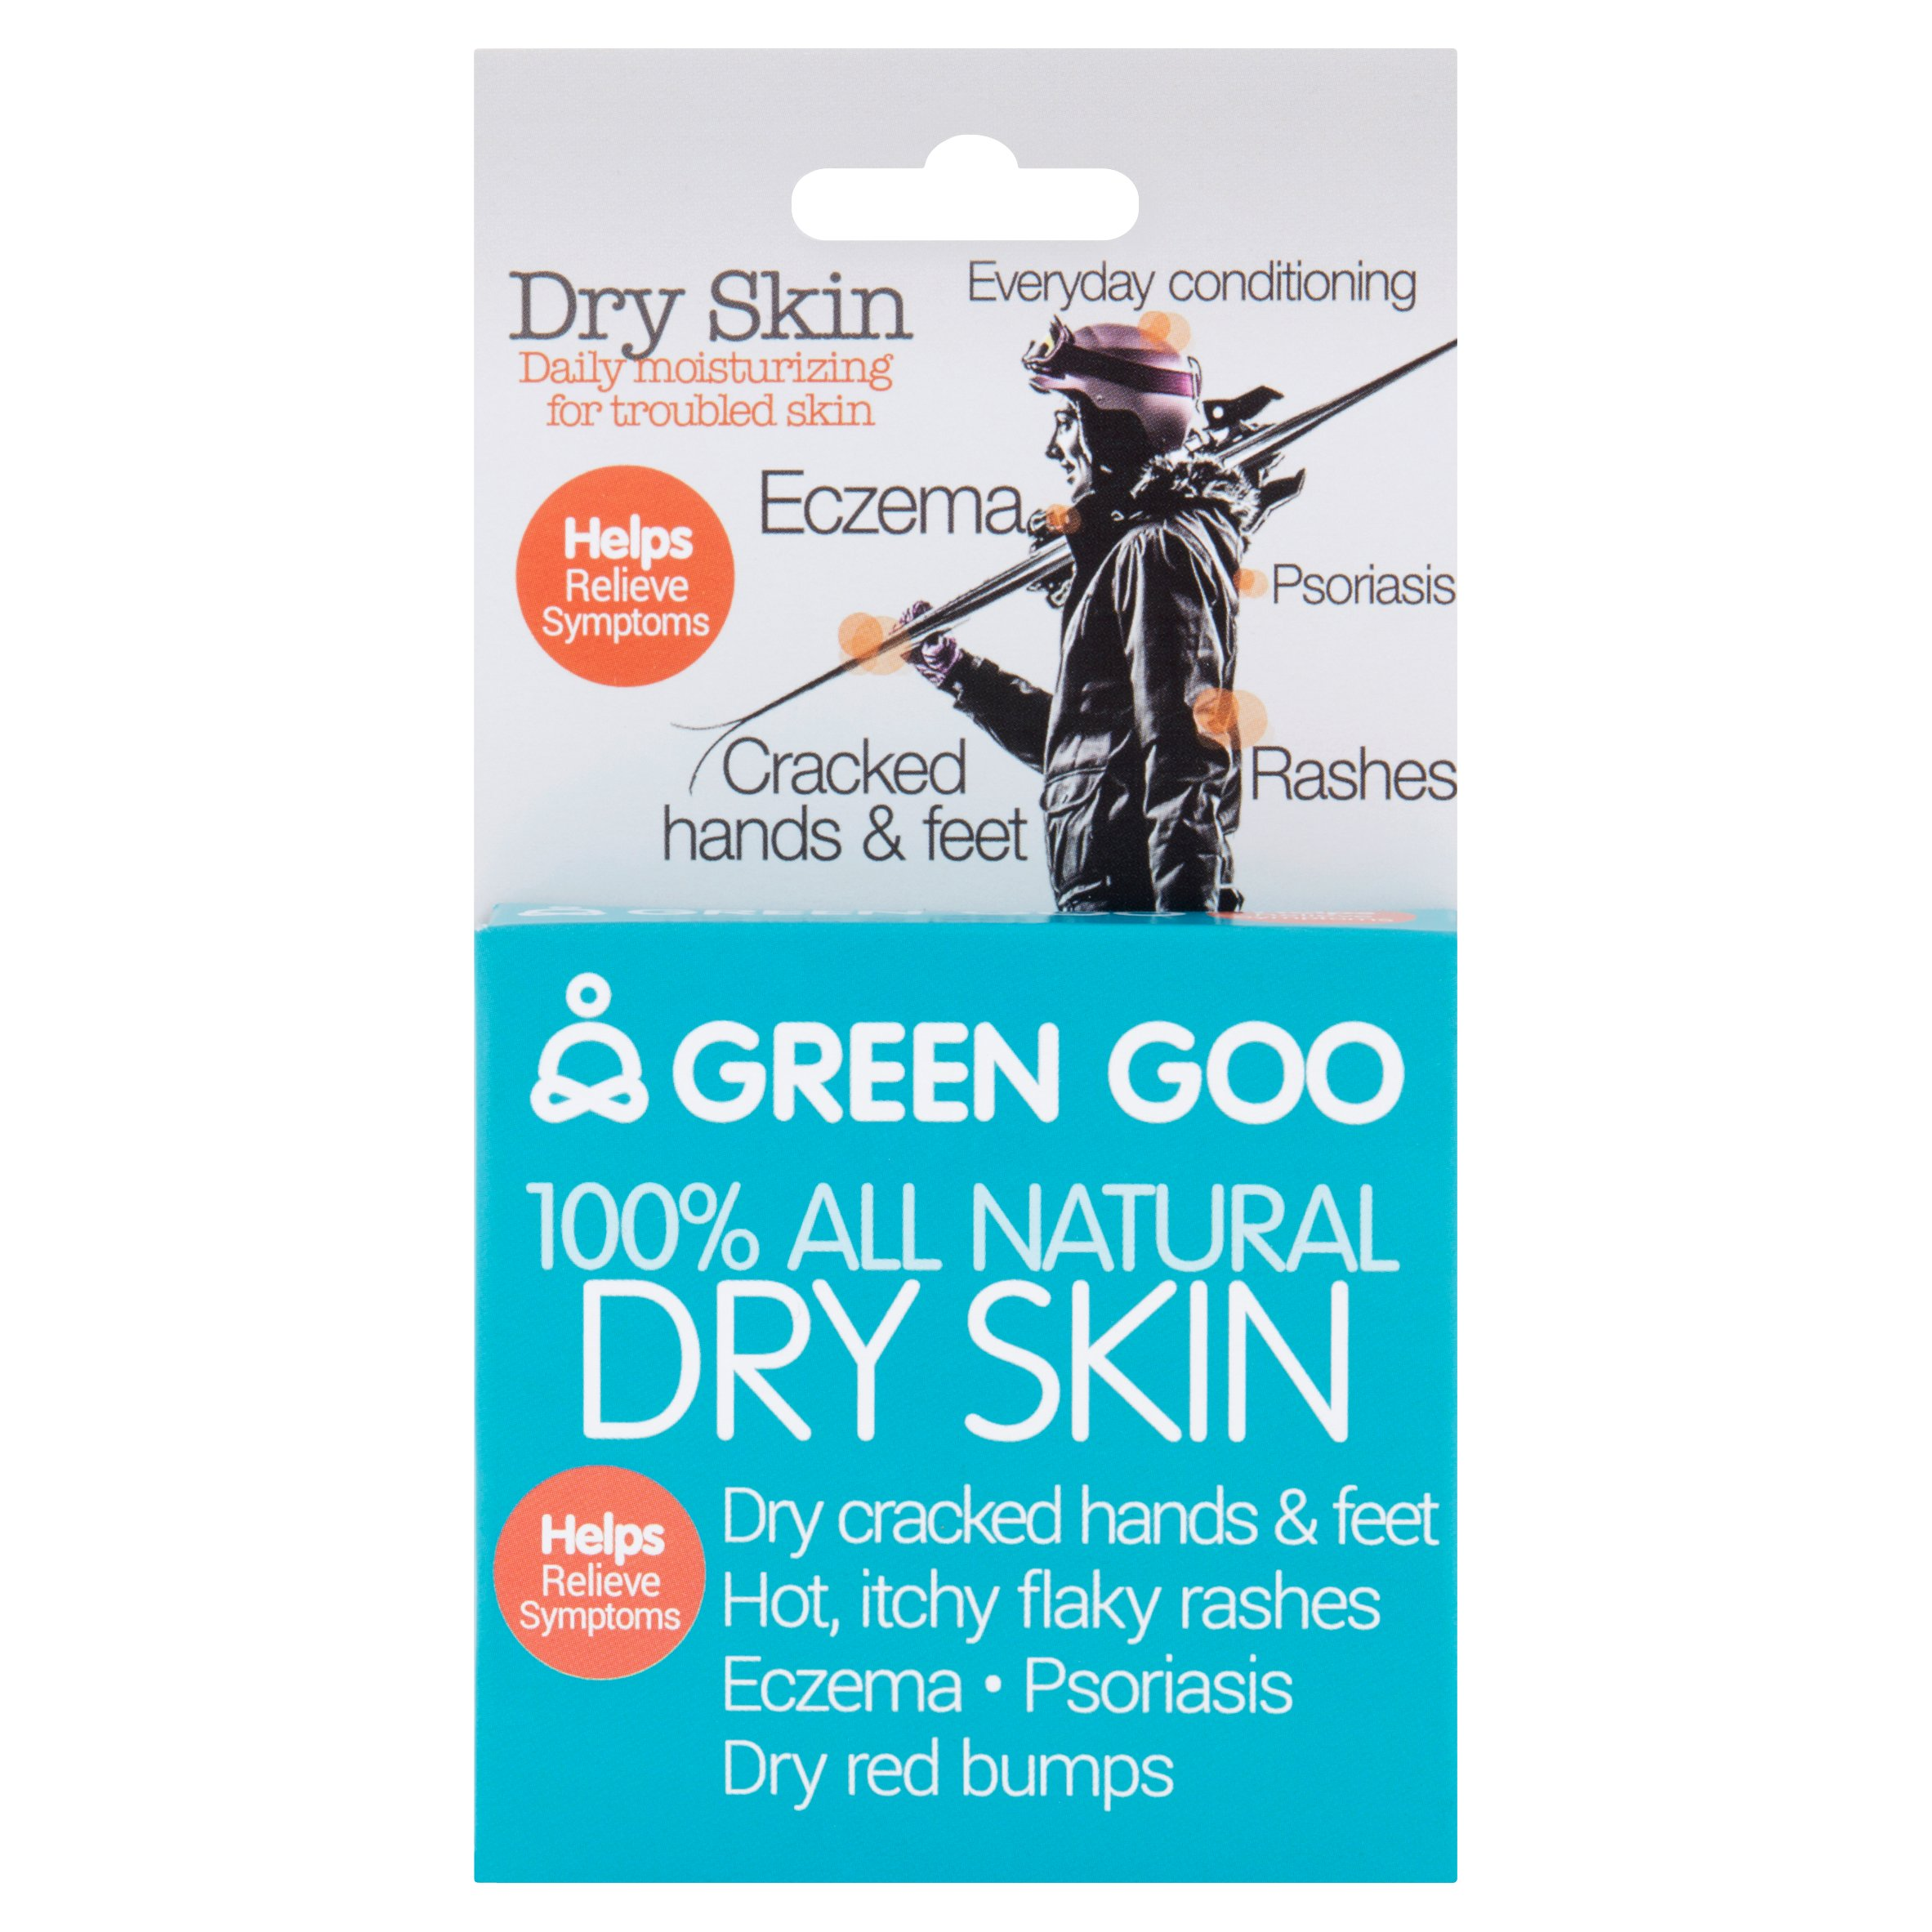 Green Goo 100% All Natural Dry Skin Daily Moisturizing for Troubled Skin, 1.82 oz